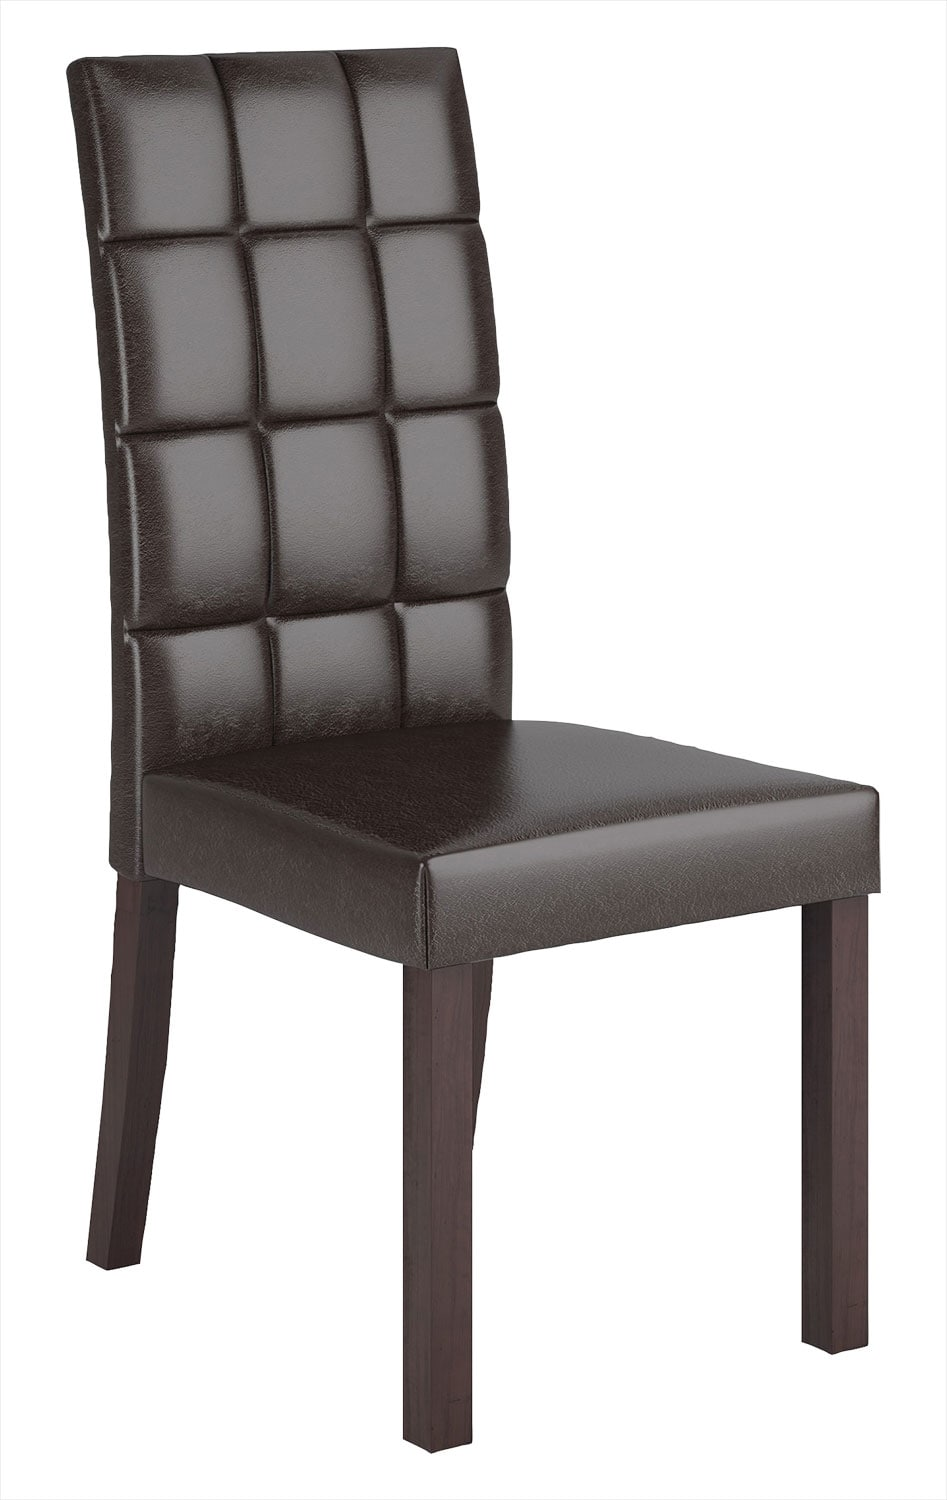 Atwood Faux Leather Dining Chair – Dark Brown